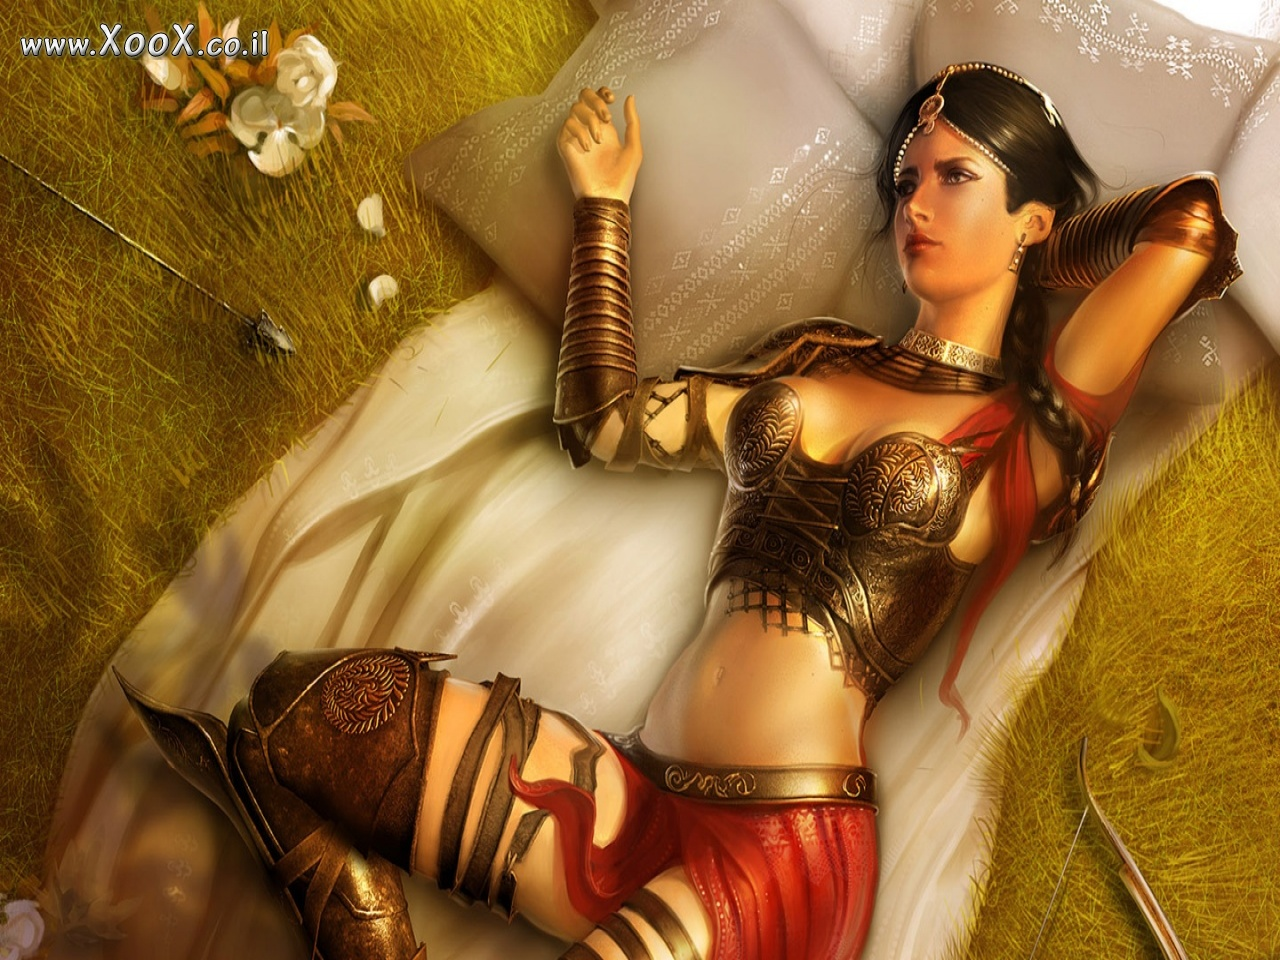 Prince of persia game nude imager hardcore amateurs girl